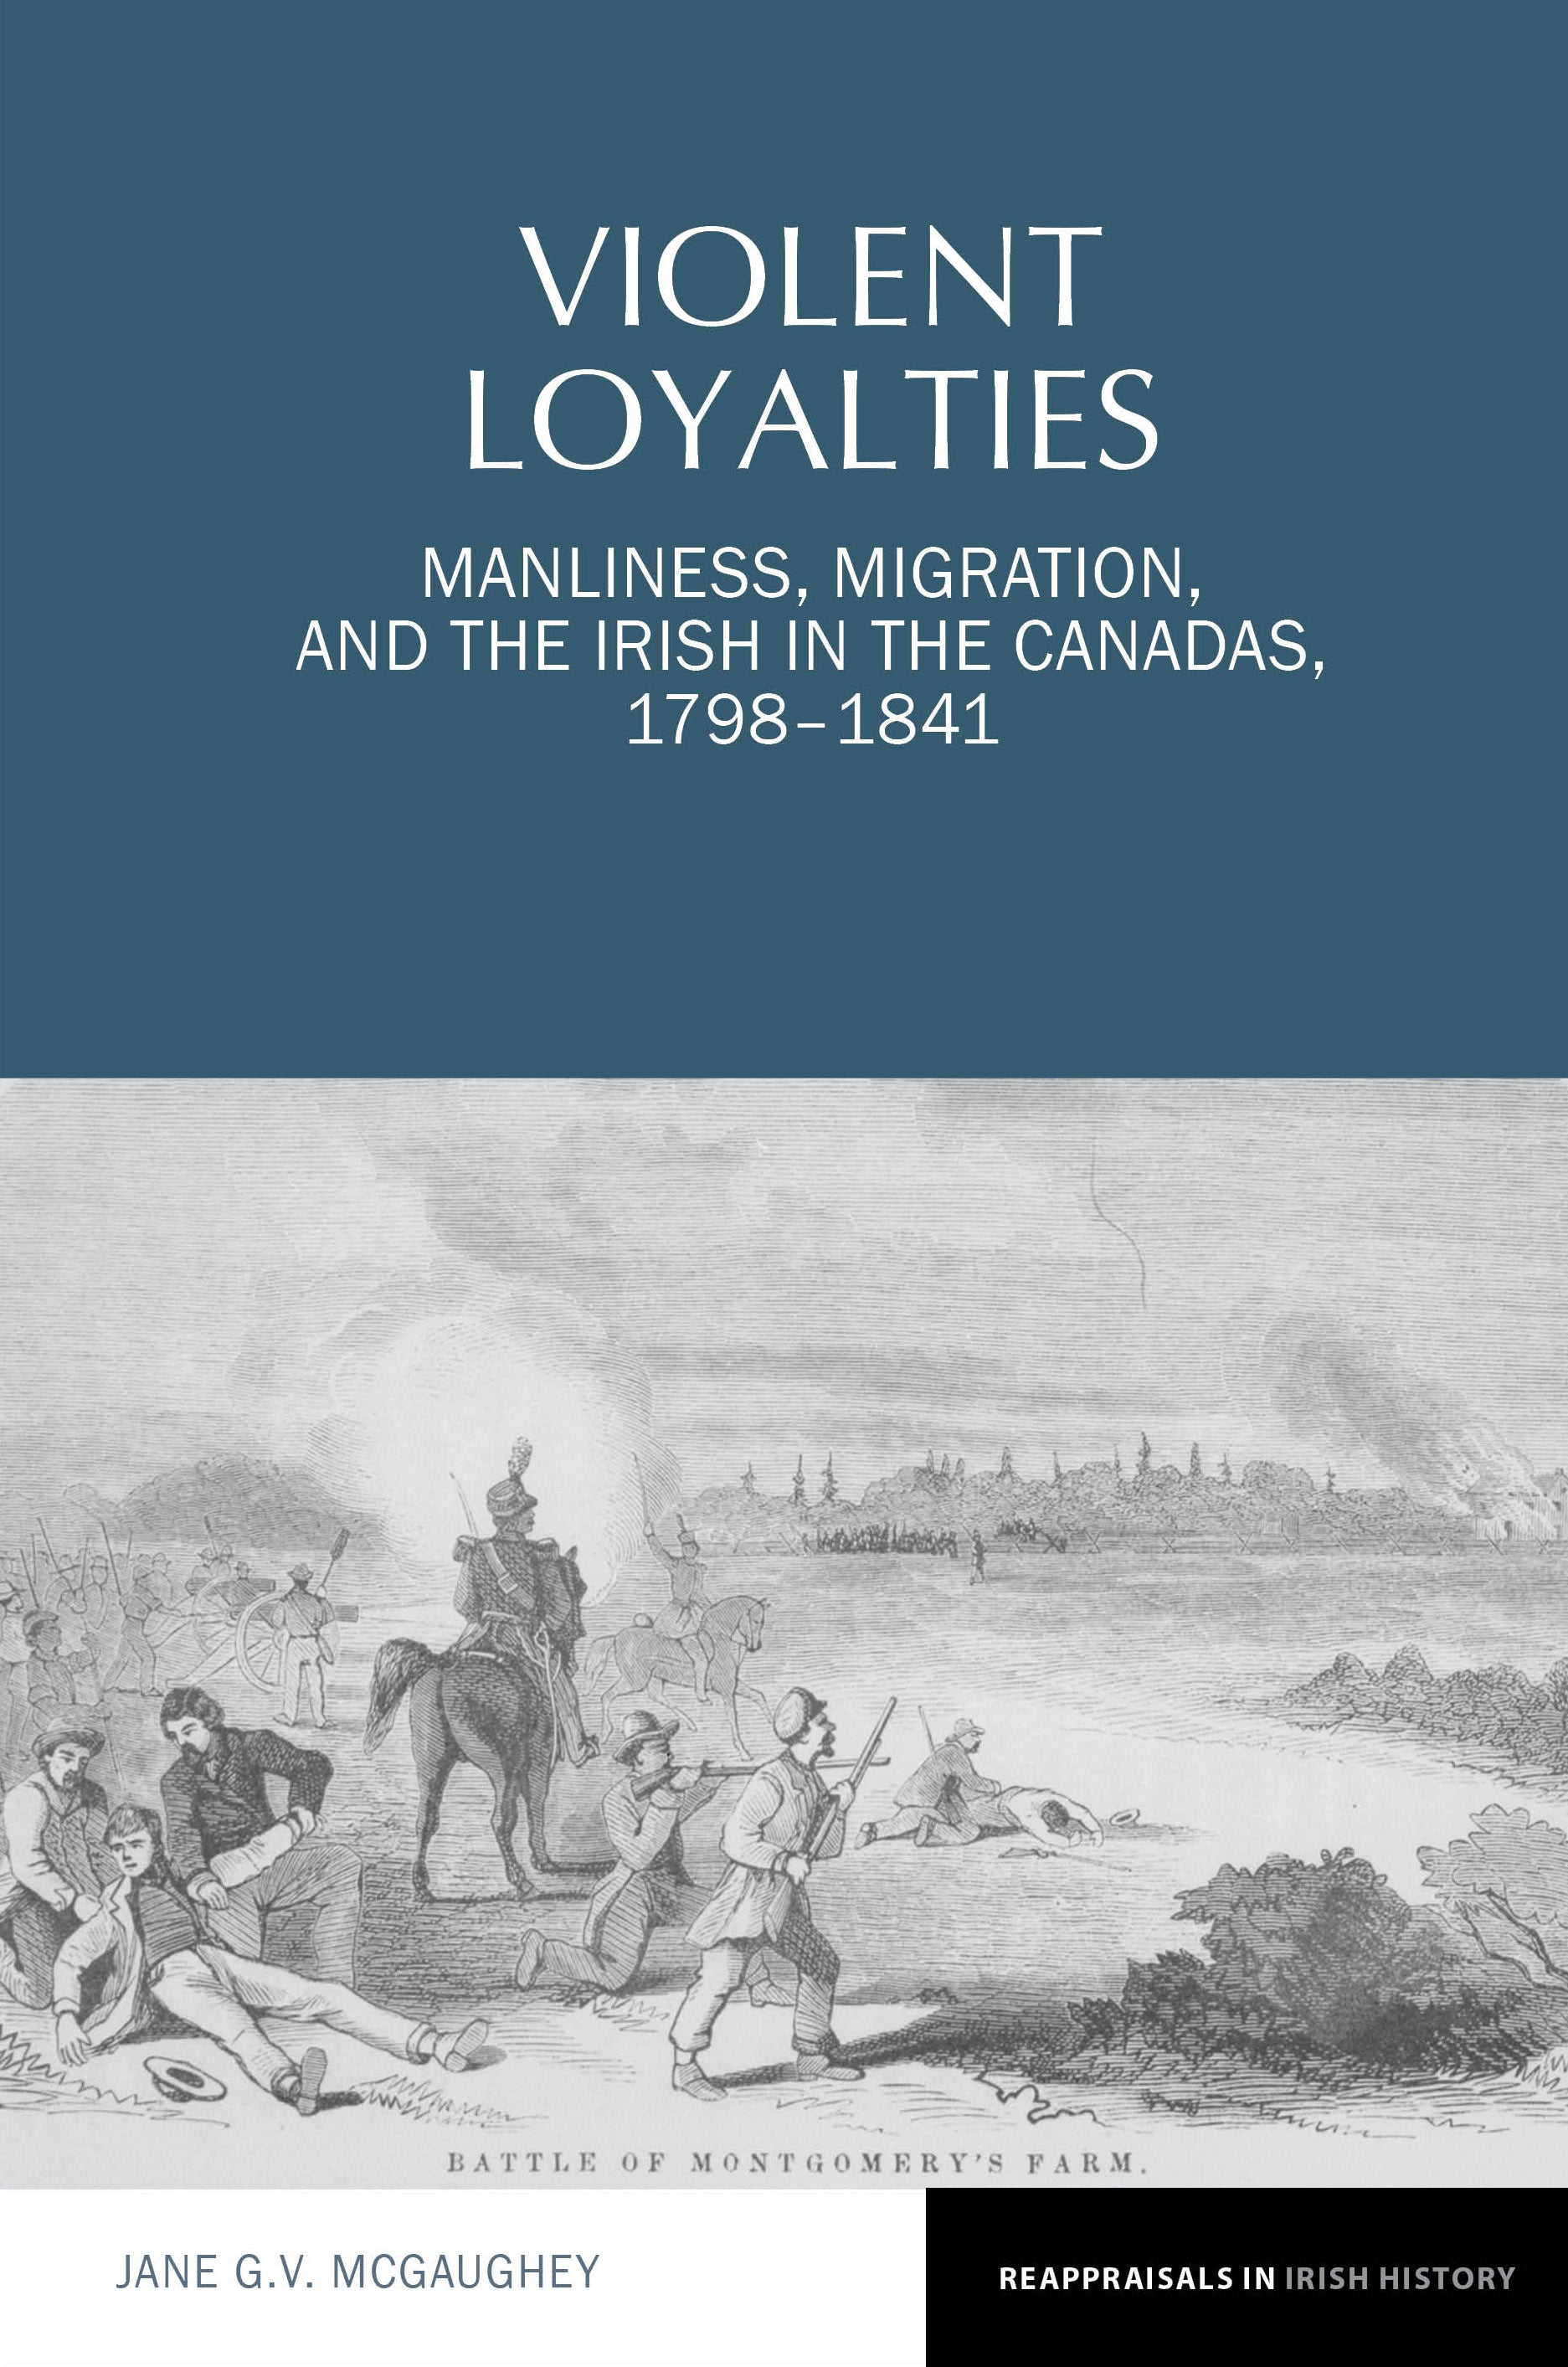 link to Reappraisals in Irish History series